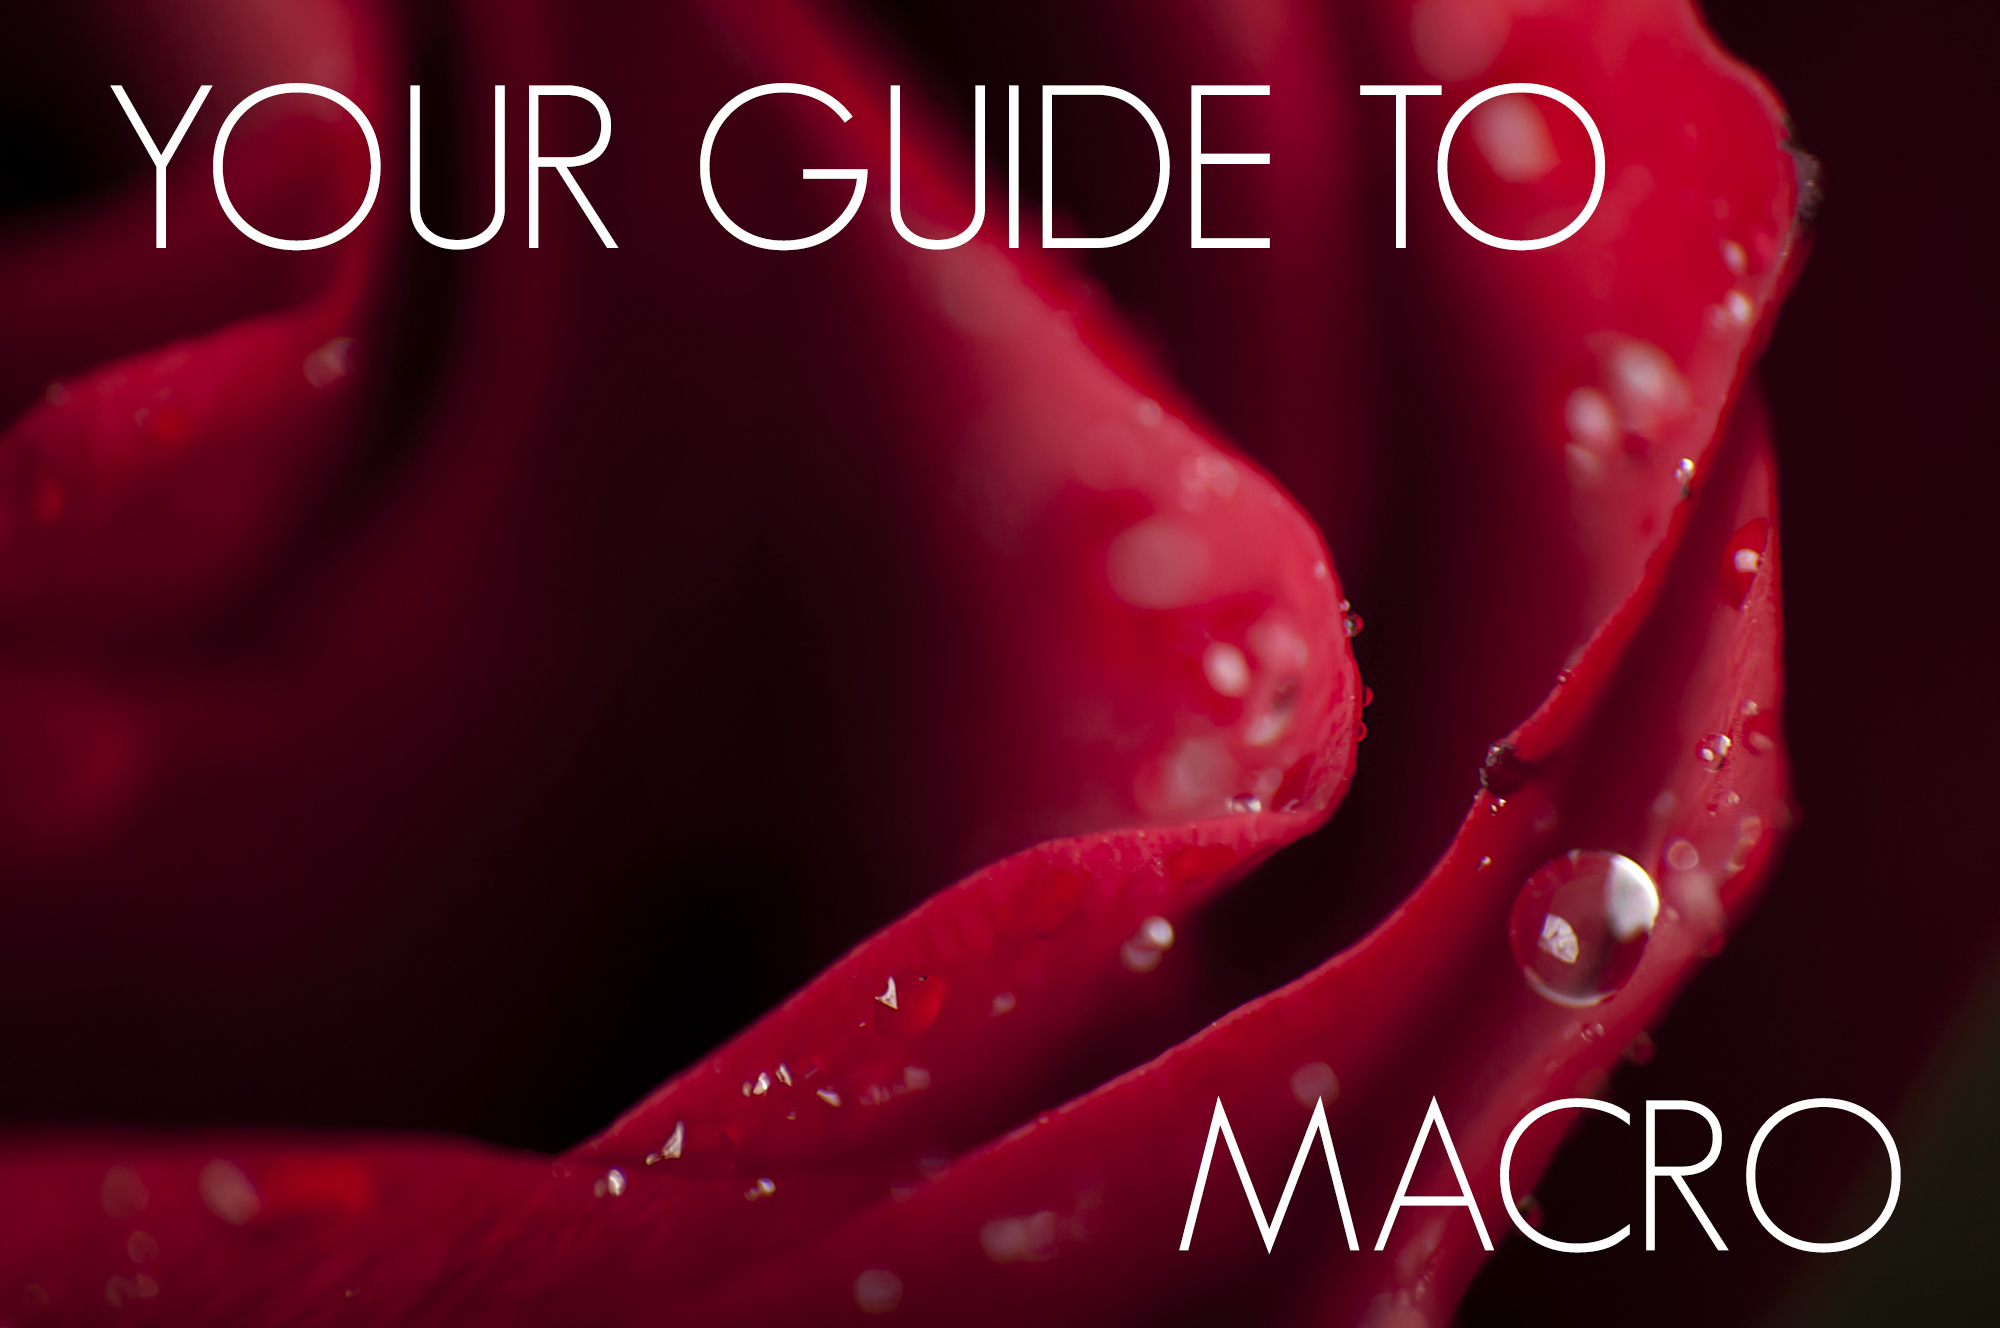 Your guide to macro